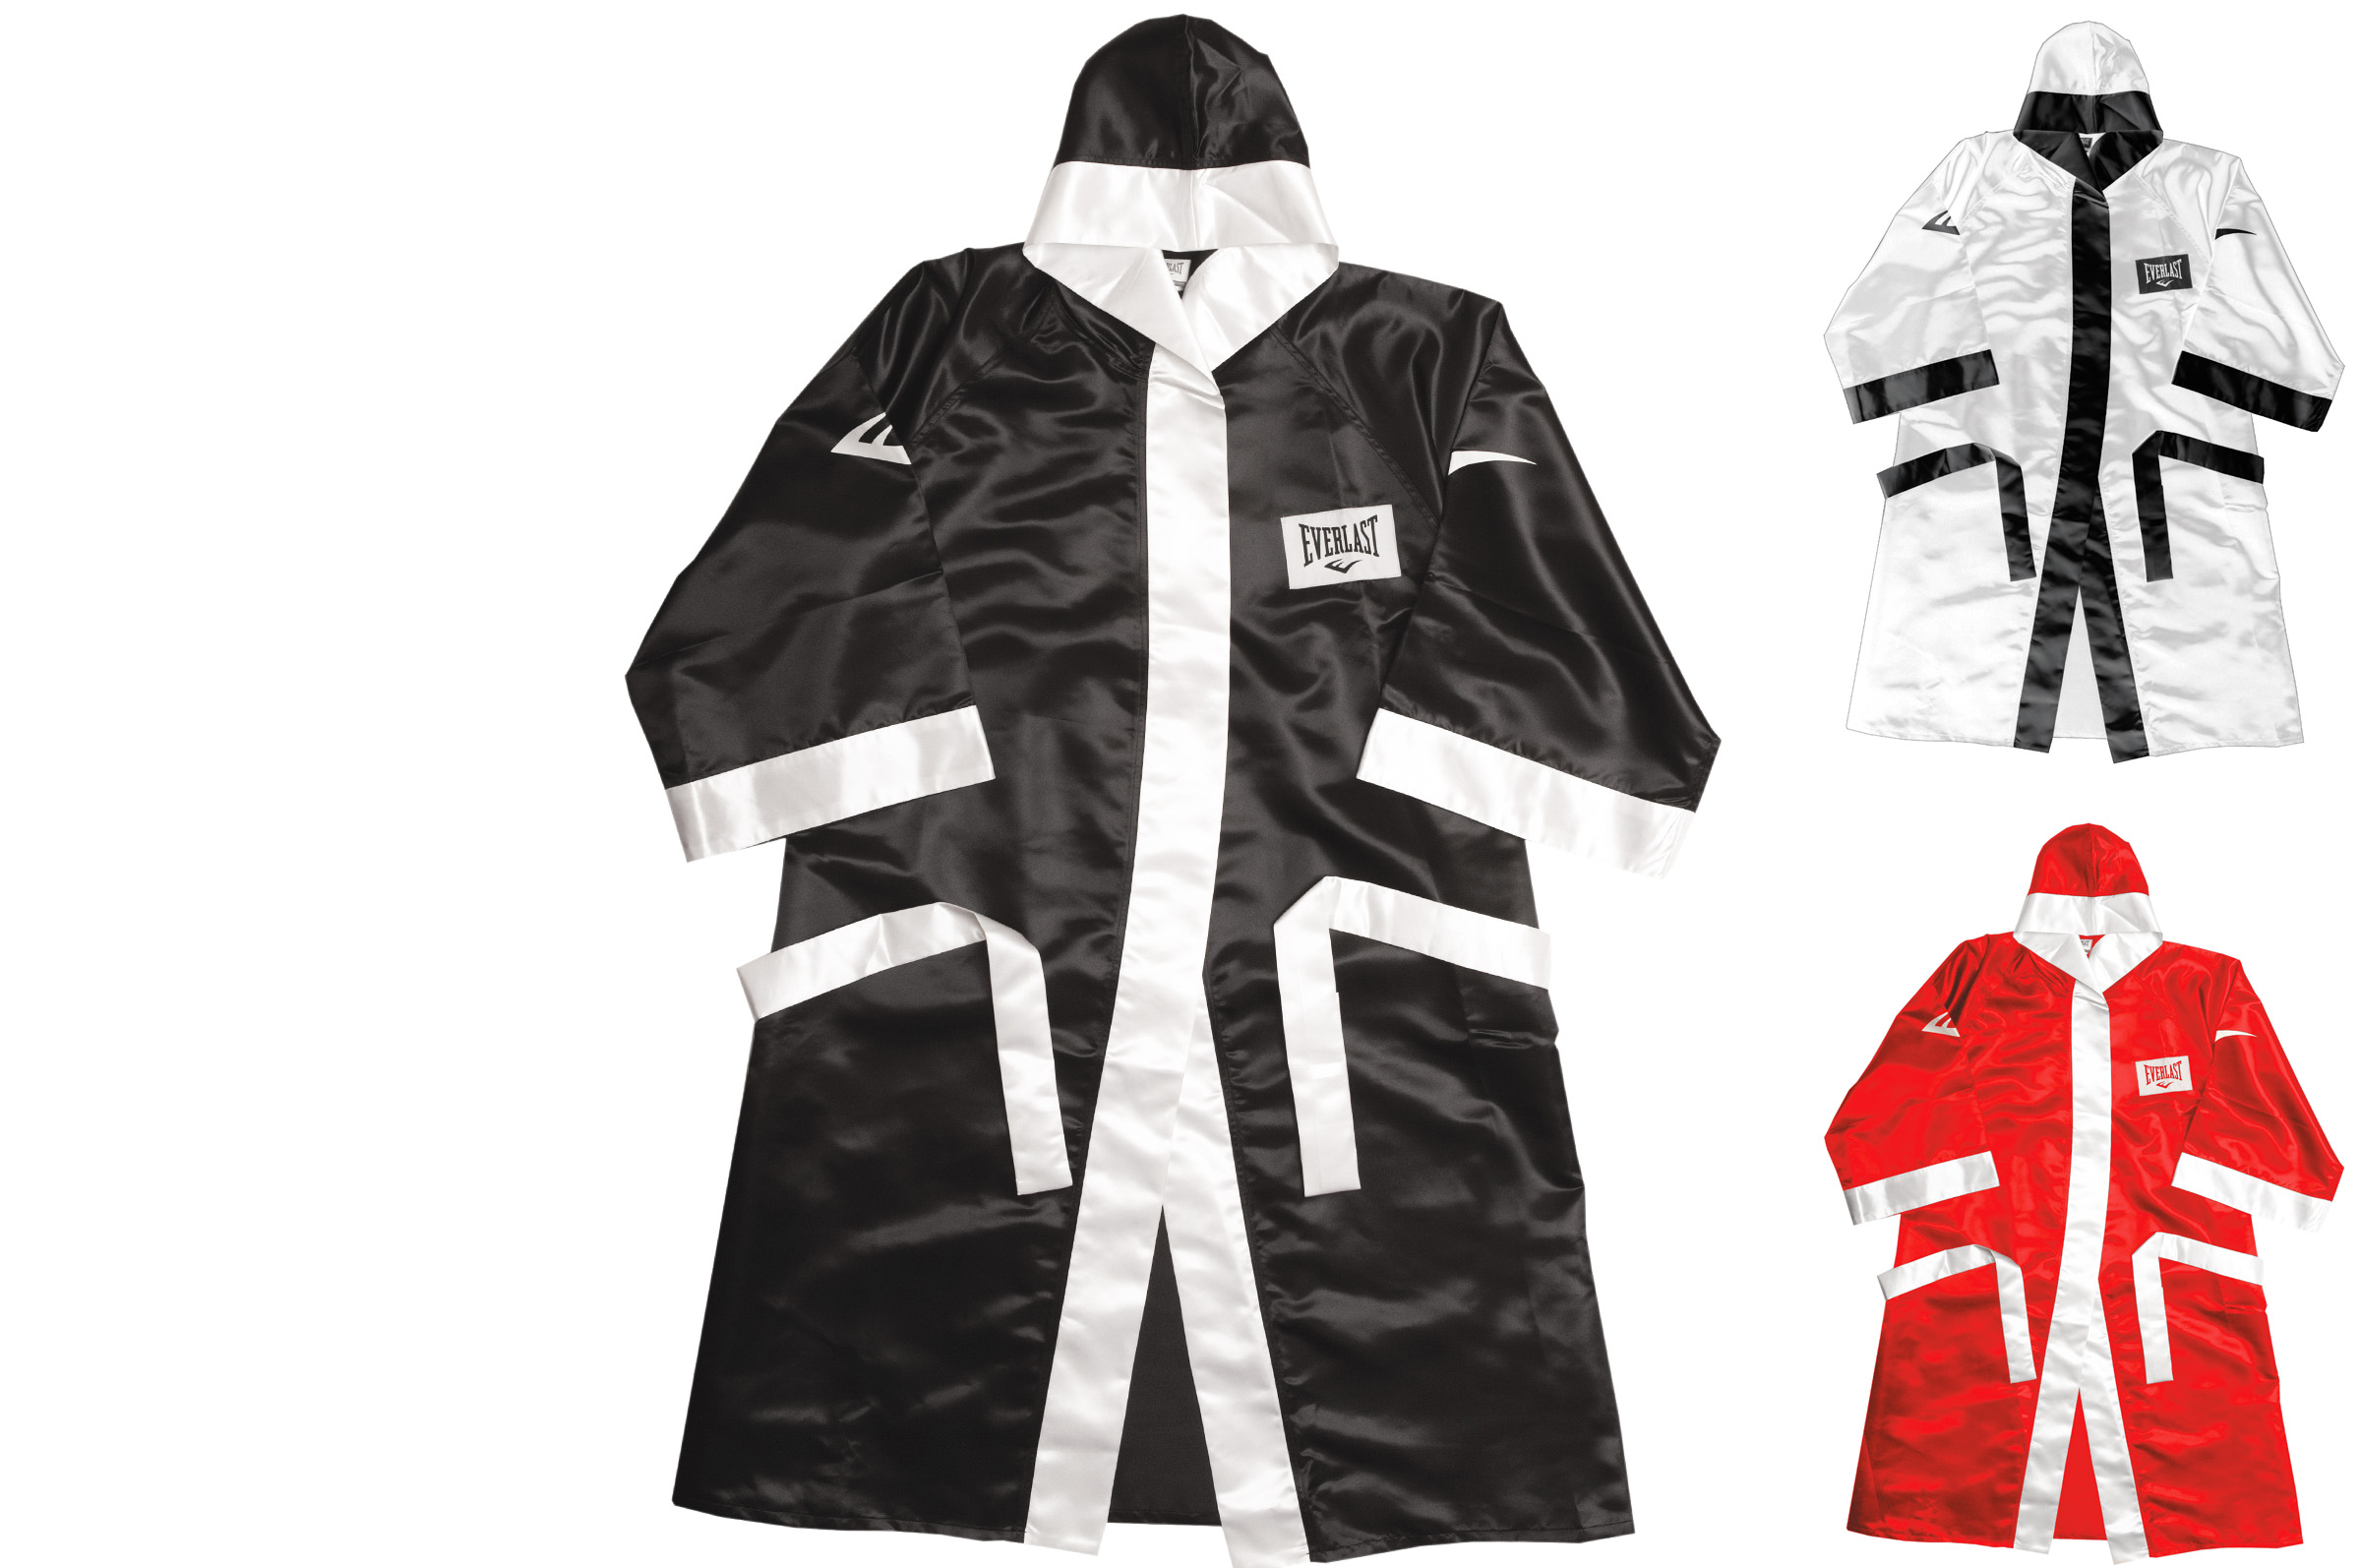 Full Lenght Boxing Robe with Hood, Everlast